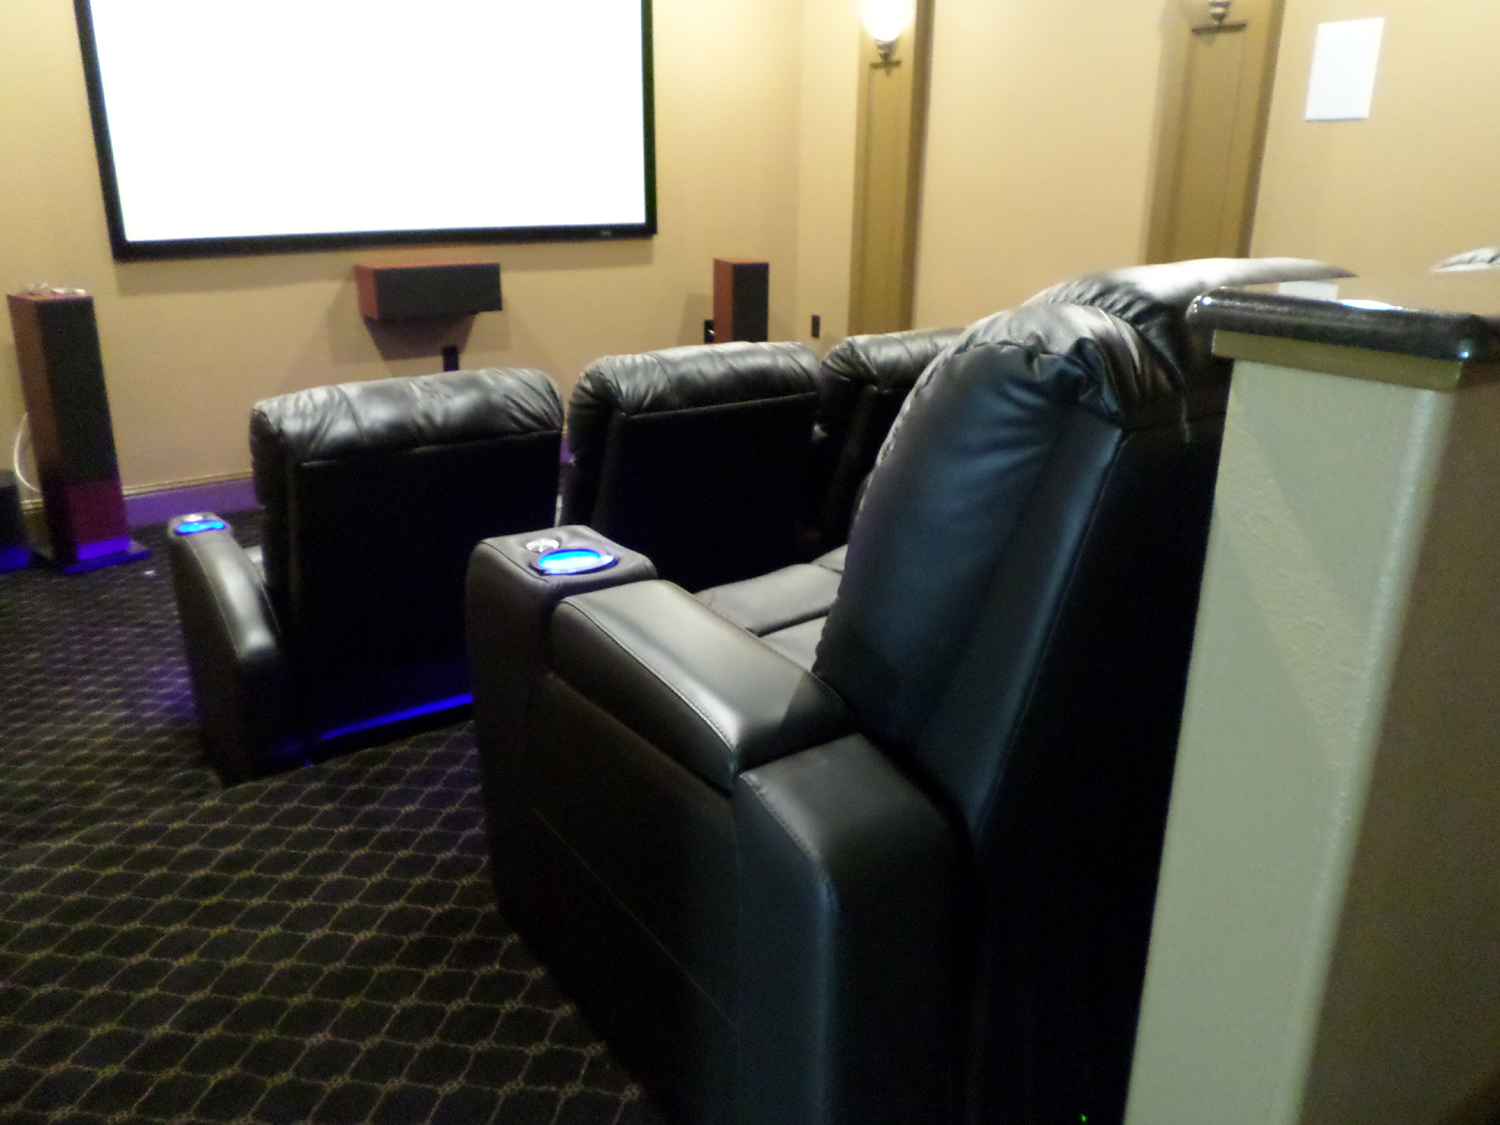 Media Room Chairs Home Theater Seats Mccabe S Theater And Living Page 2